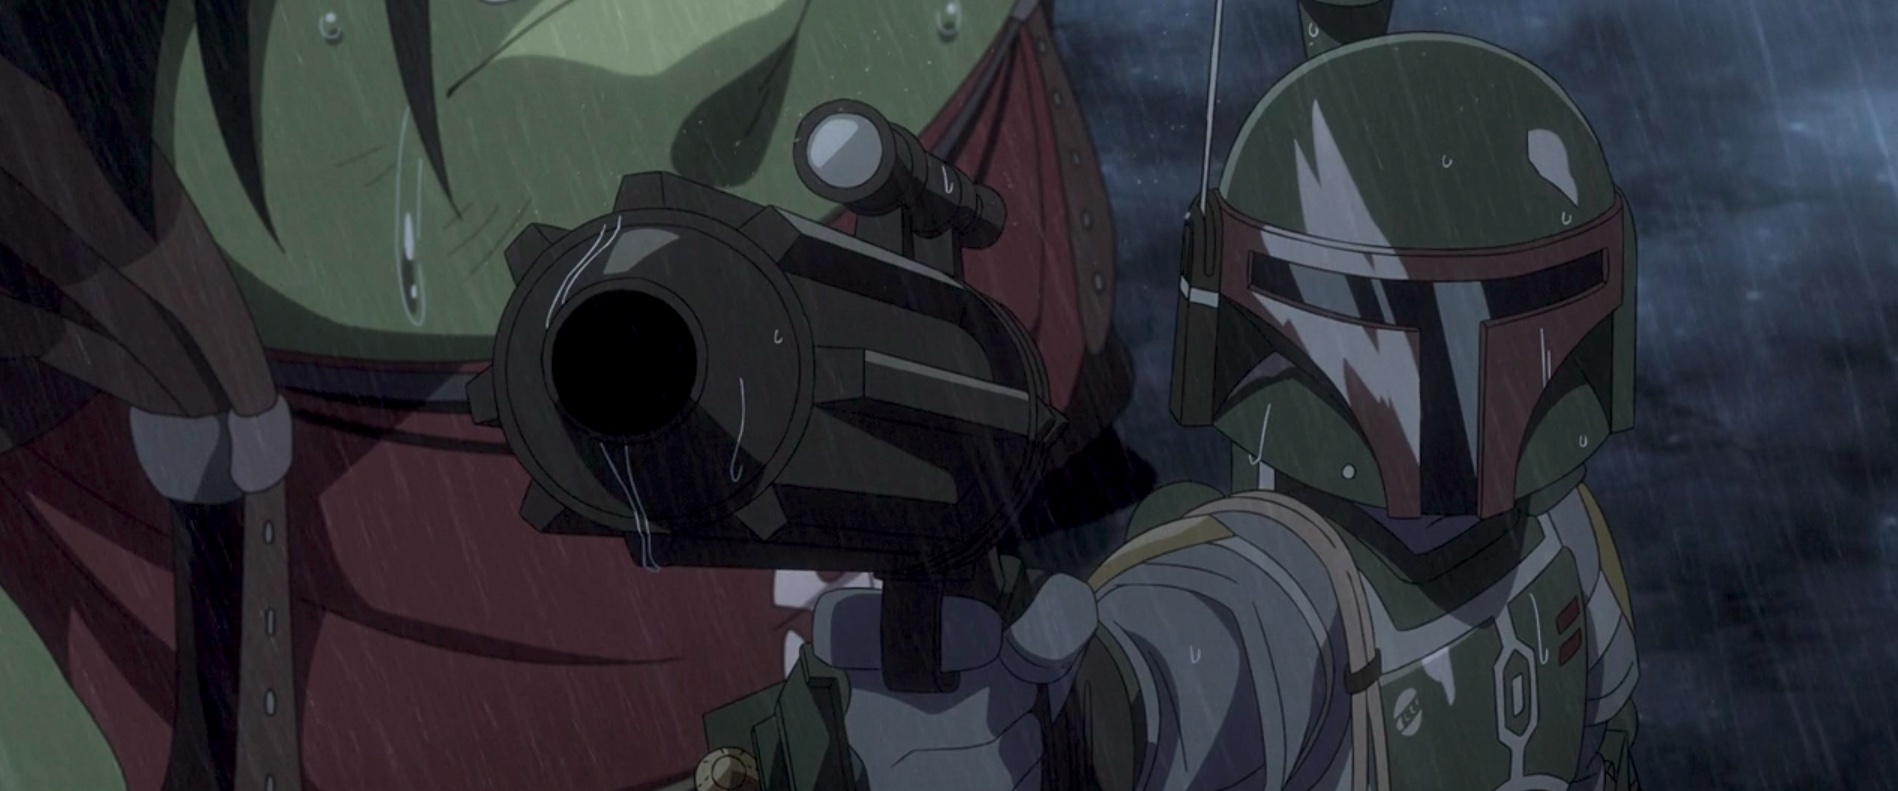 Boba Fett holds up his gun in Star Wars: Visions